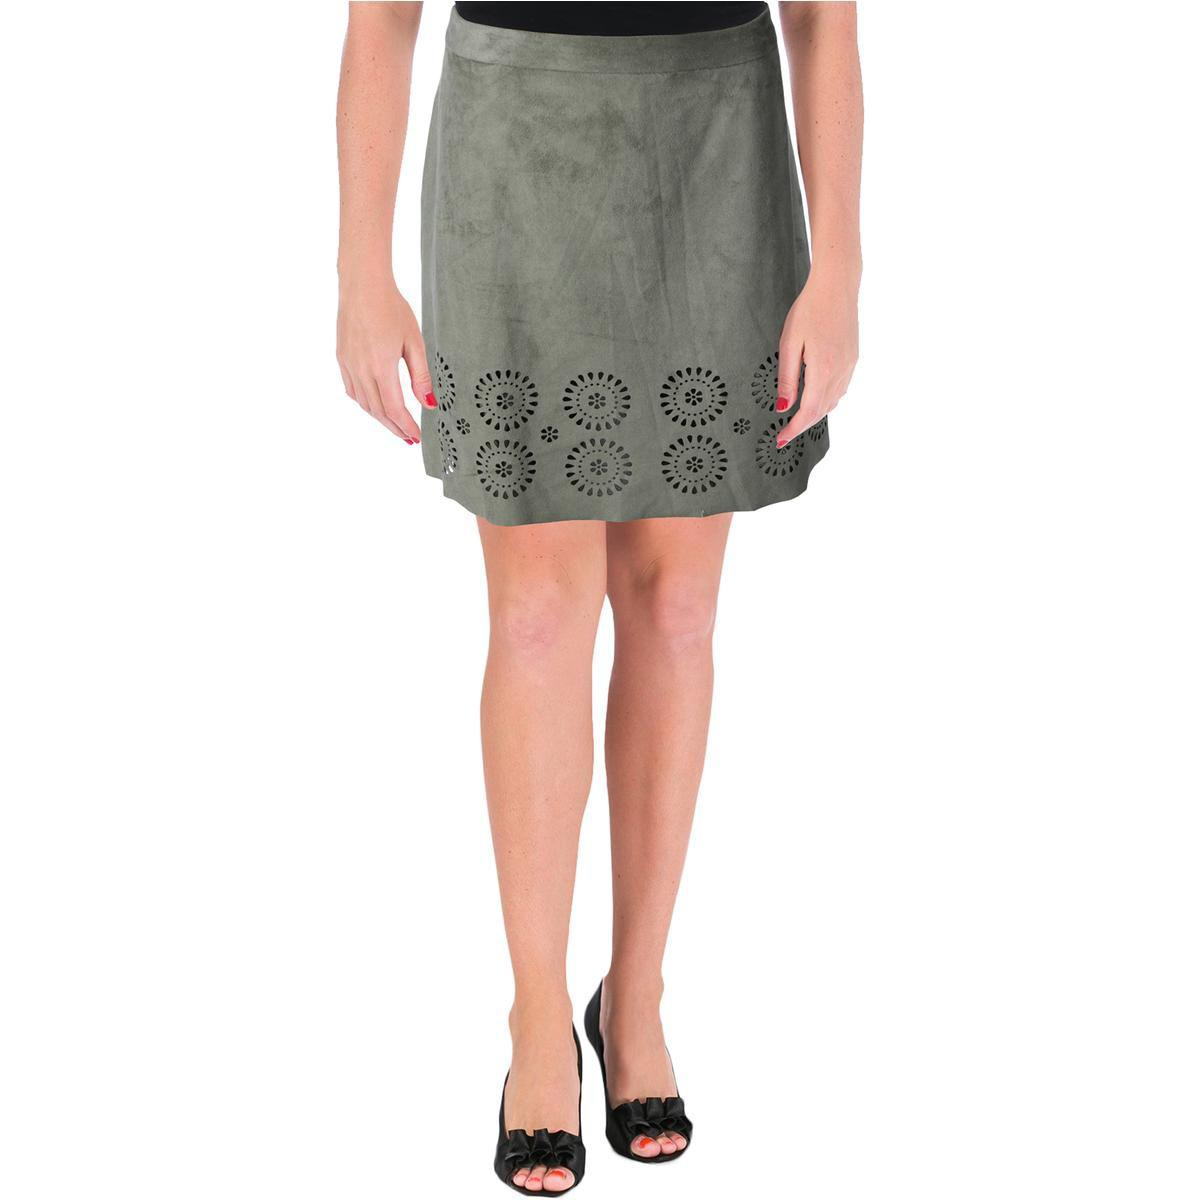 cb0cfb53ab Lyst - Vince Camuto Womens Faux Suede Laser Cut A-line Skirt in Gray